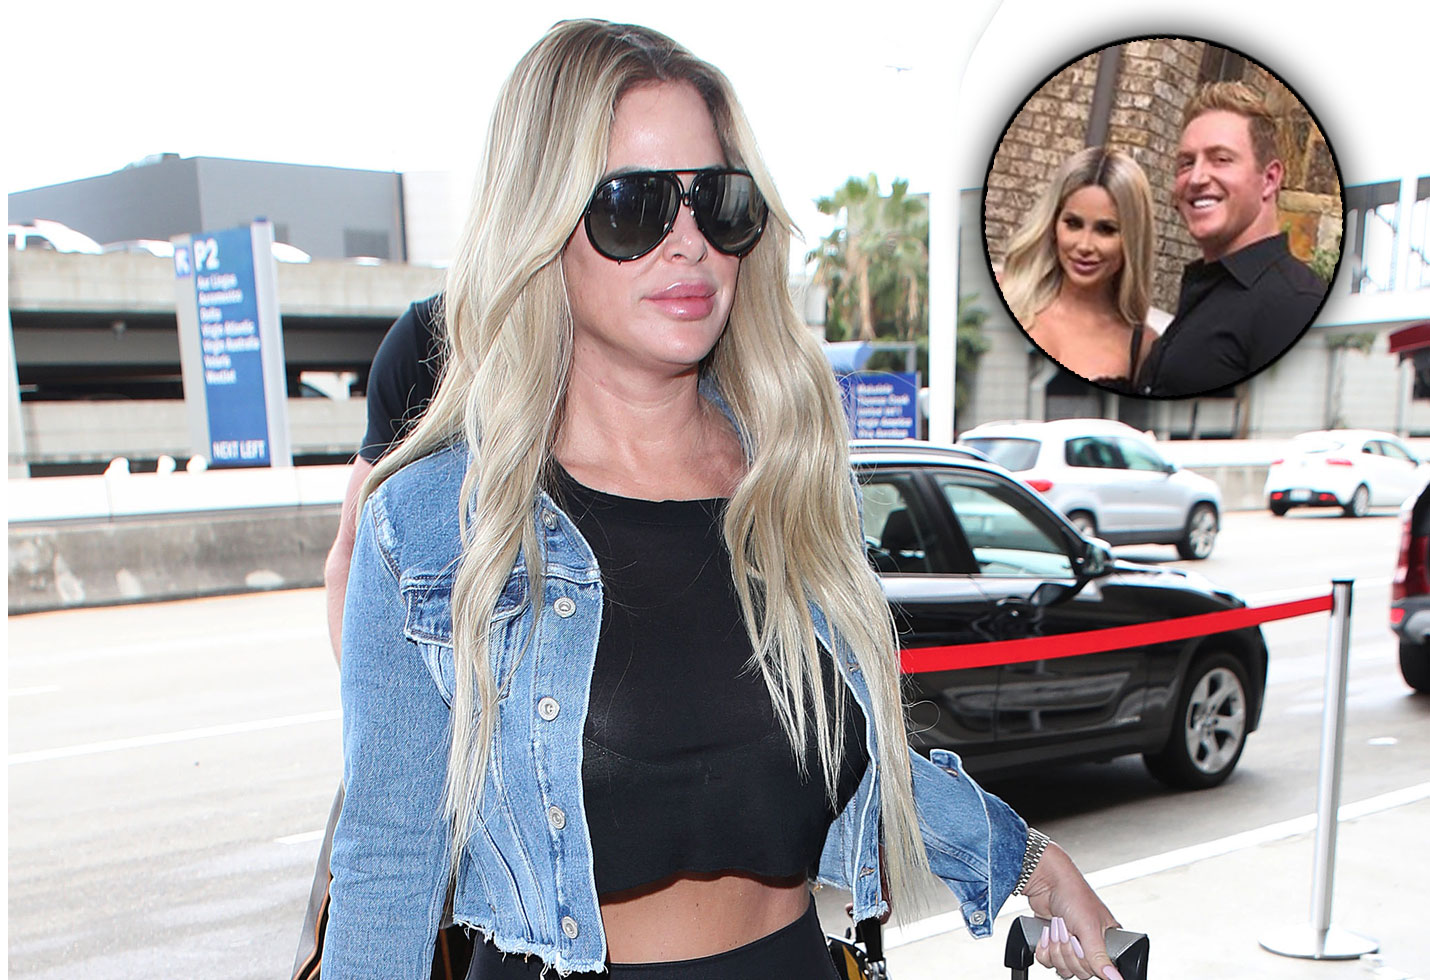 Kim Zolciak plastic surgery lip fillers kroy biermann